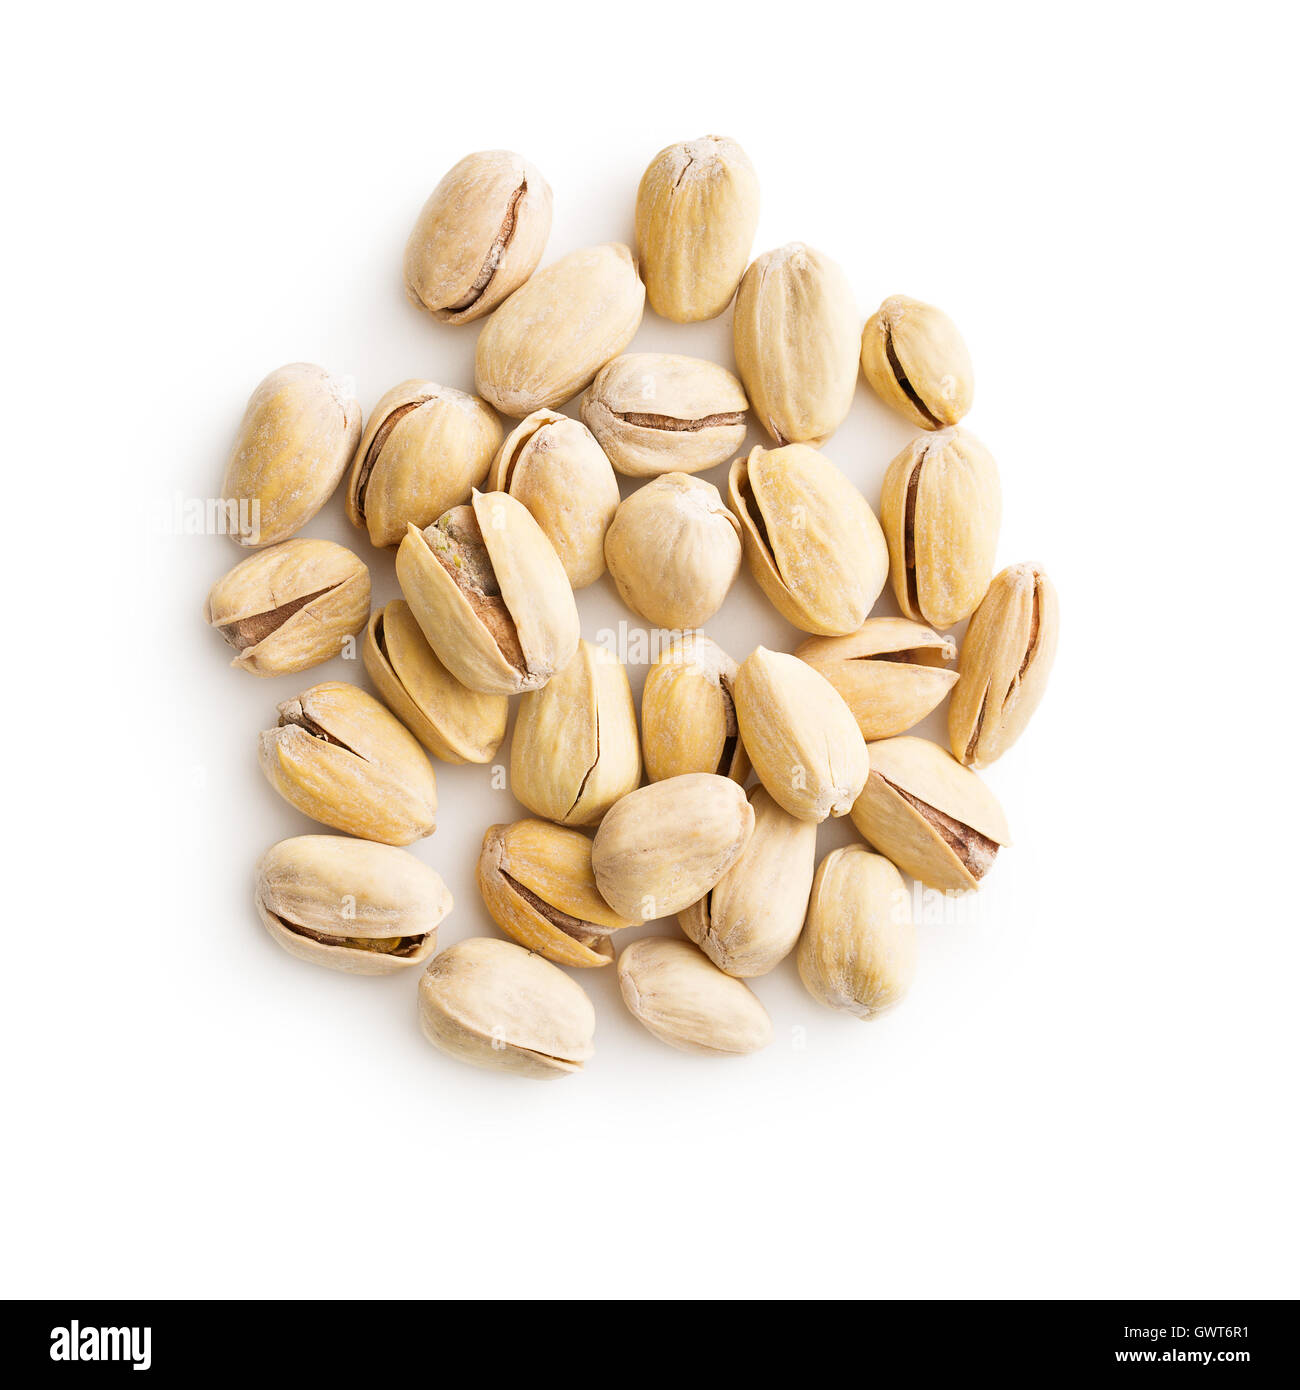 The pistachio nuts isolated on white background. Top view. - Stock Image